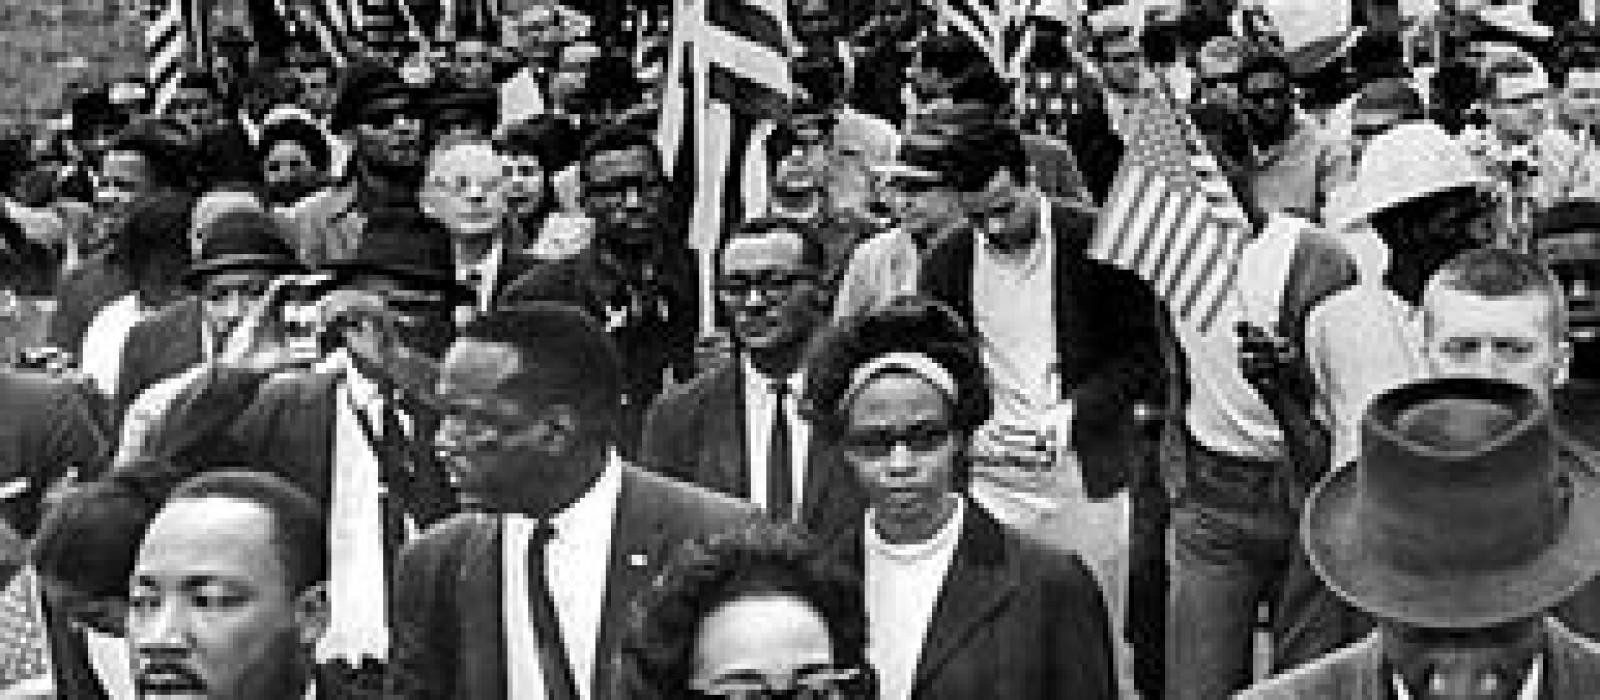 Moving Beyond My Anger to Remember Dr. King's Dream